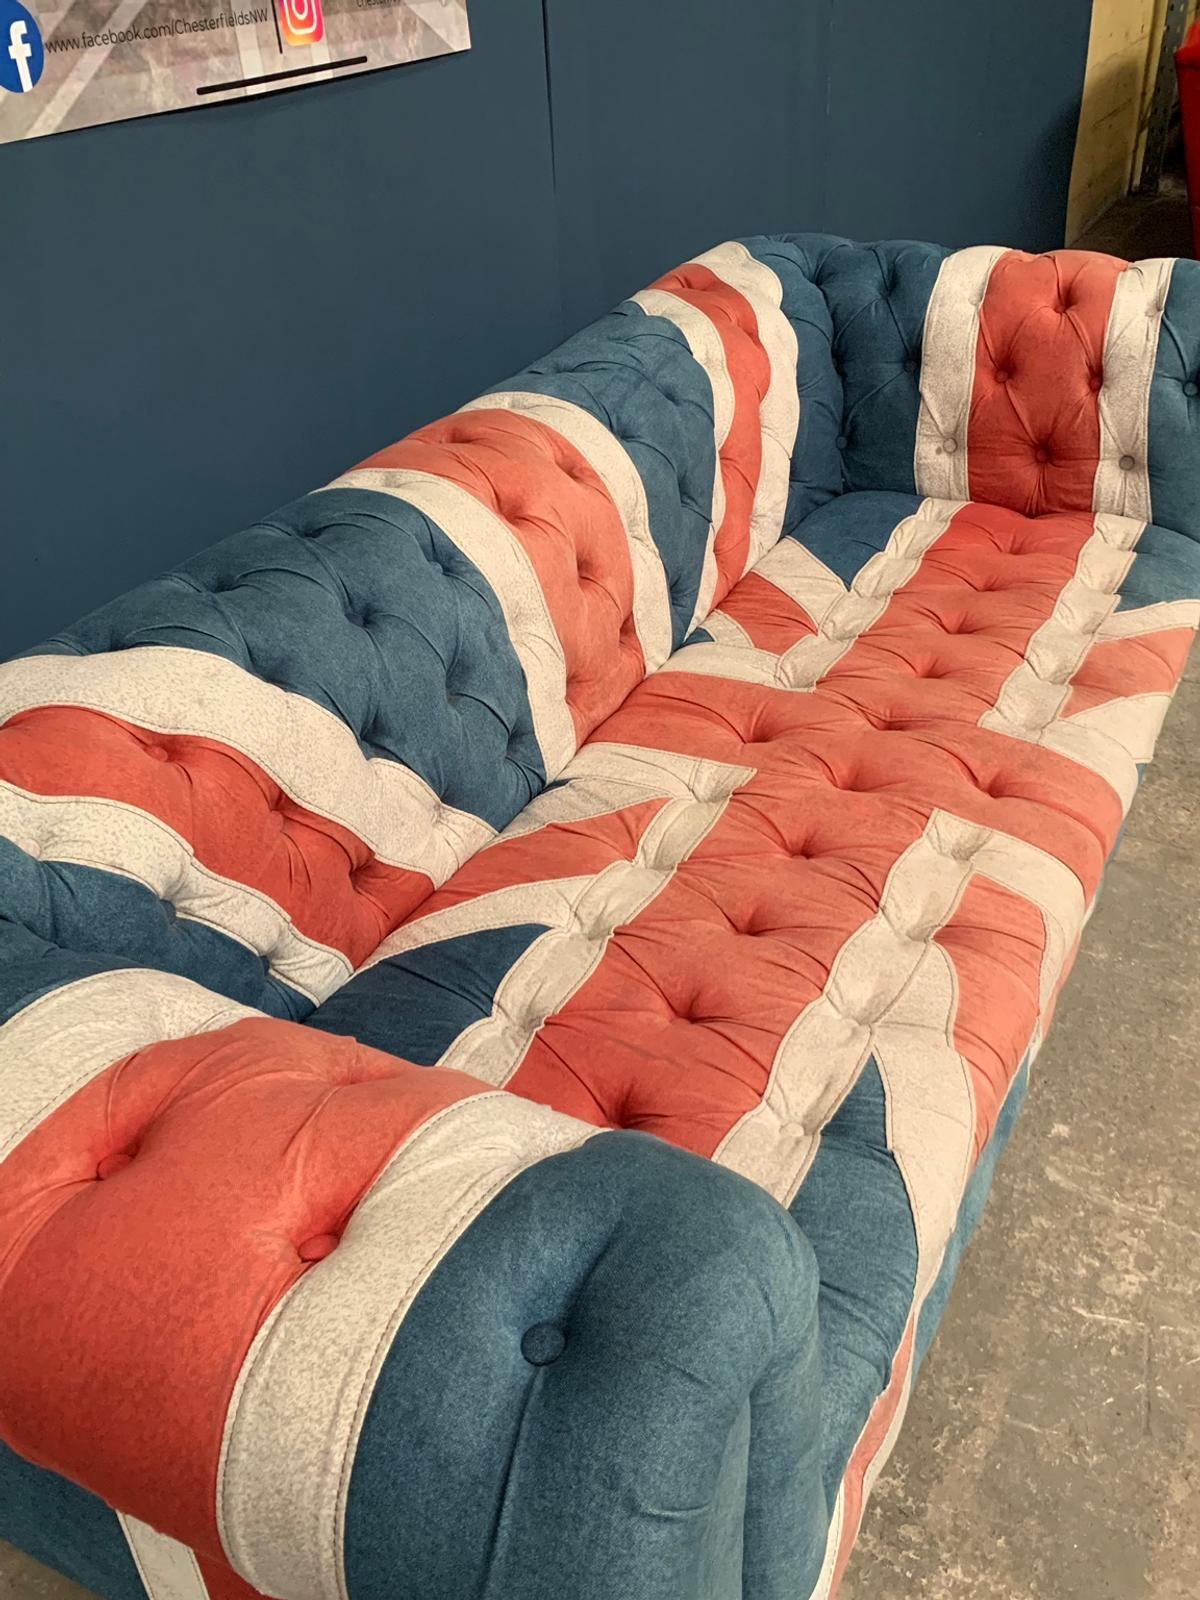 Rare Union Jack Denim Chesterfield Sofa In Wa3 Glazebury For 725 00 For Sale Shpock